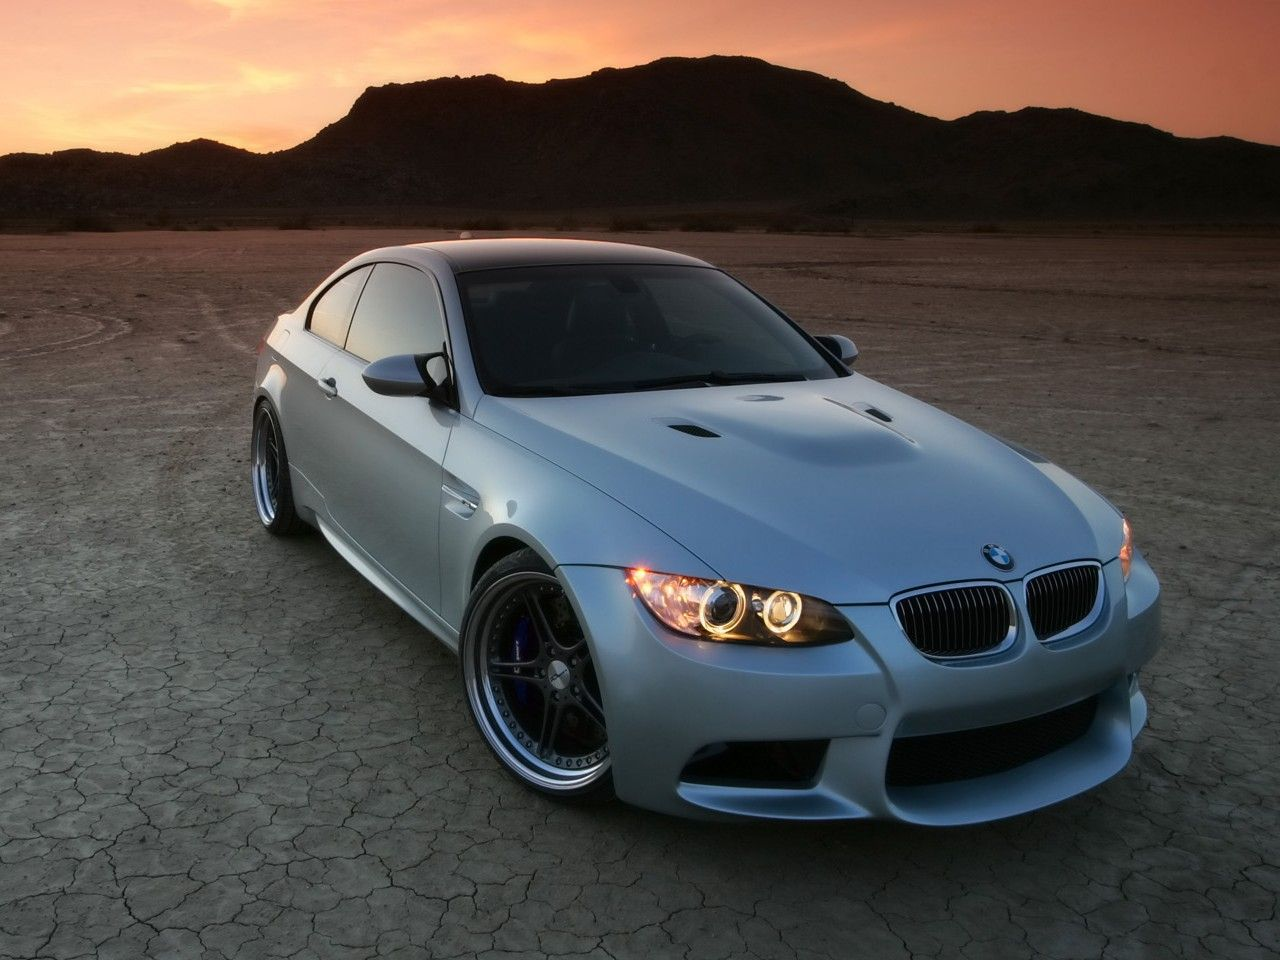 BMW M Car Review Engine Specification And BMW M Price Cheap - 2010 bmw m3 price